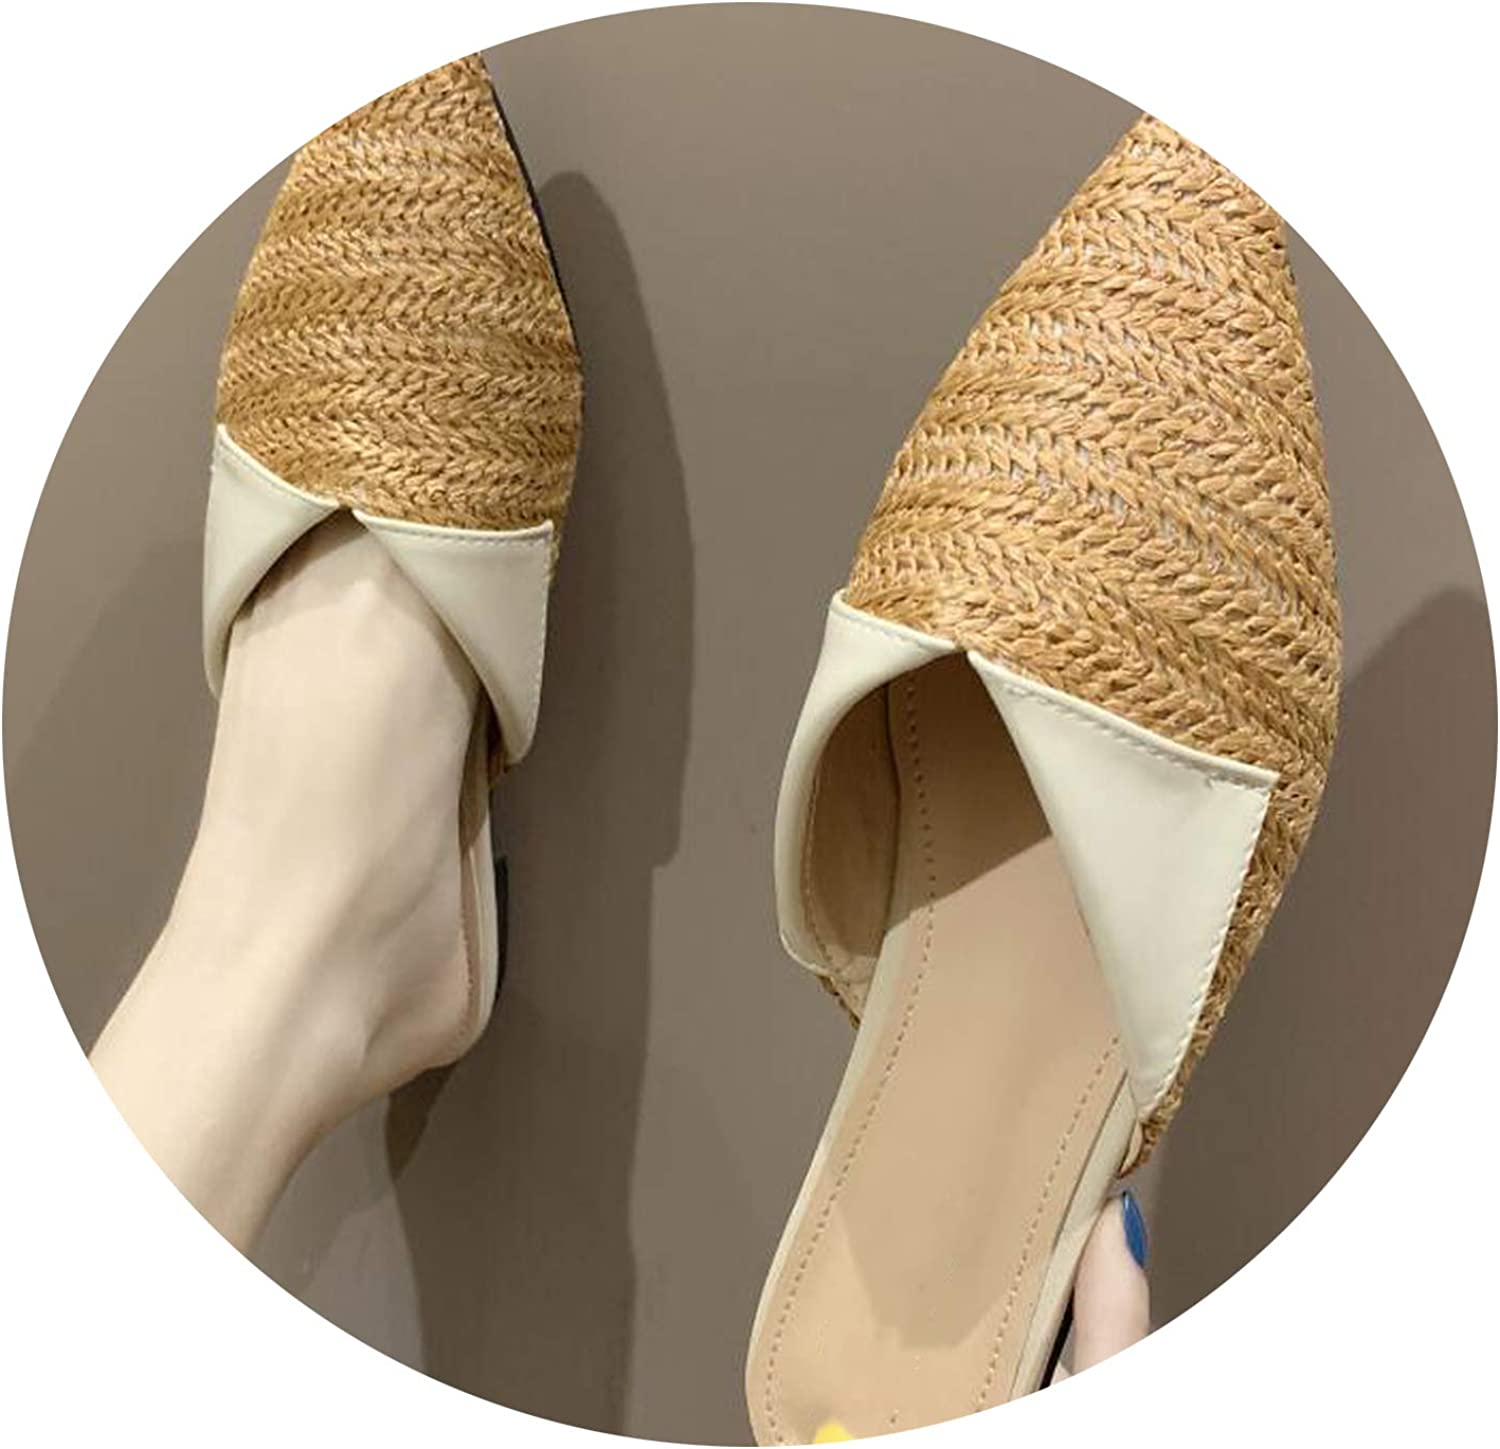 Sensitives 2019 Women Slippers Fashion Pointed Toe Weave Mules shoes Flat Slides Summer Beach shoes g205